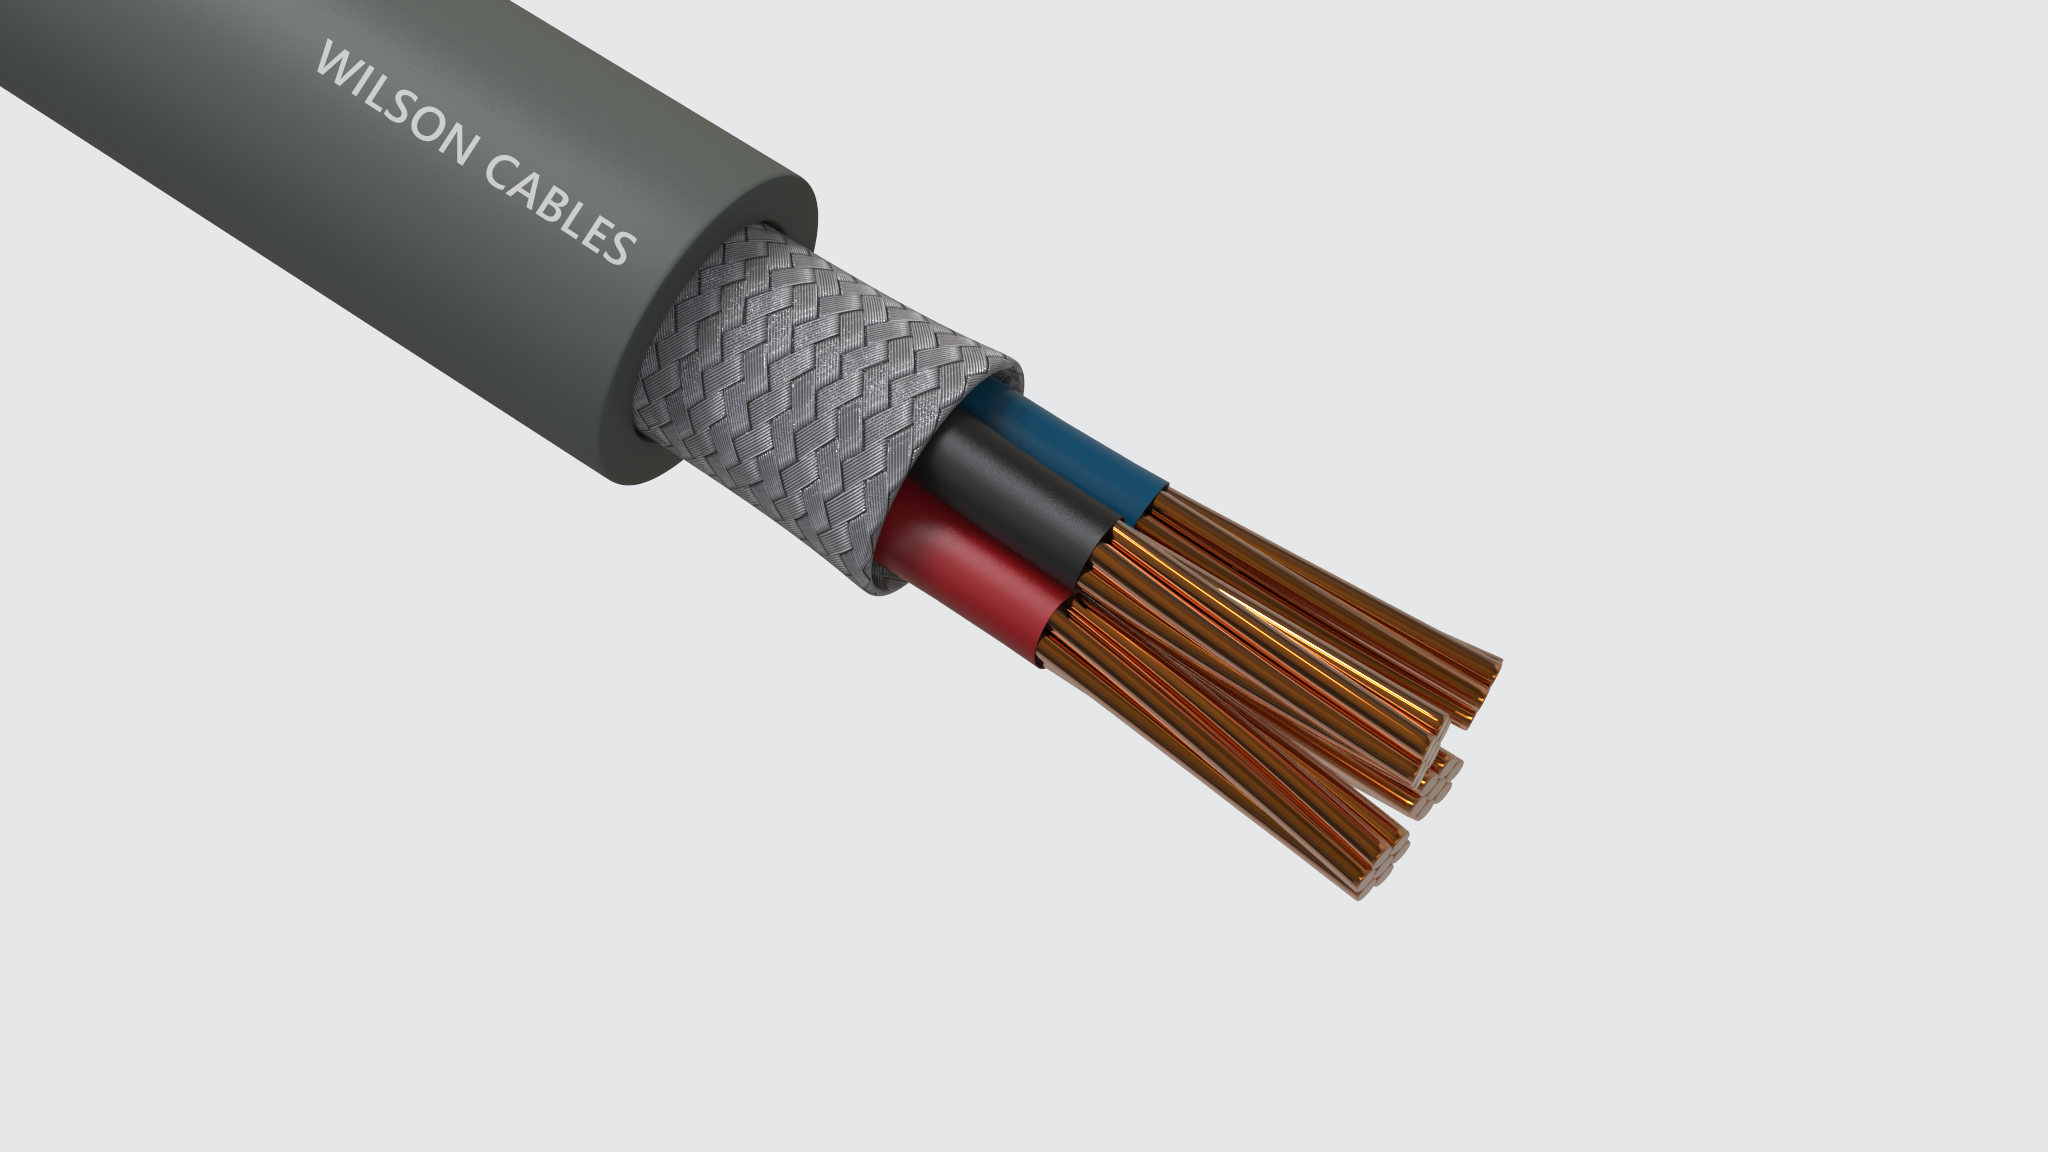 Wilson-Flex 100CY-Z / 200CY-JZ and 100CY-J / 200CY-J PVC Insulated, Screened Flexible Cables